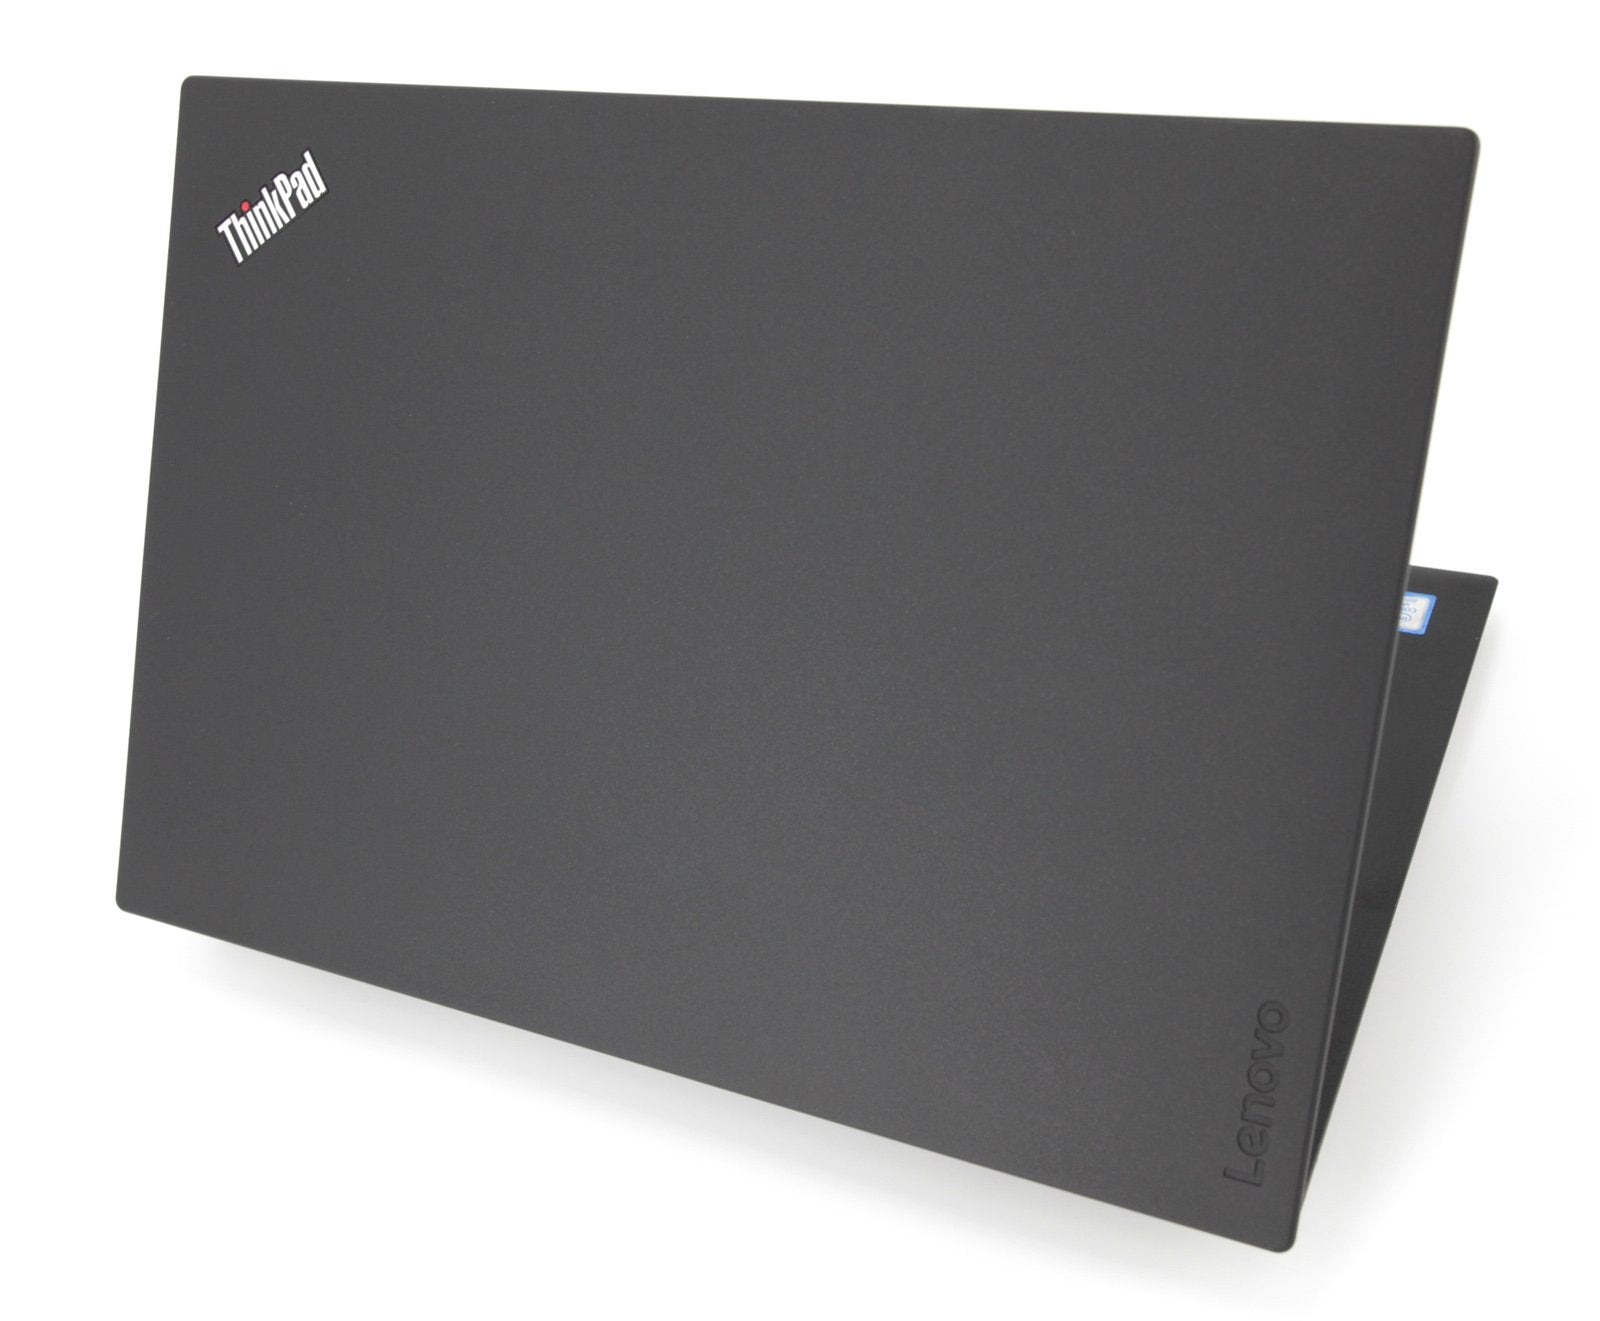 Lenovo Thinkpad T480 14